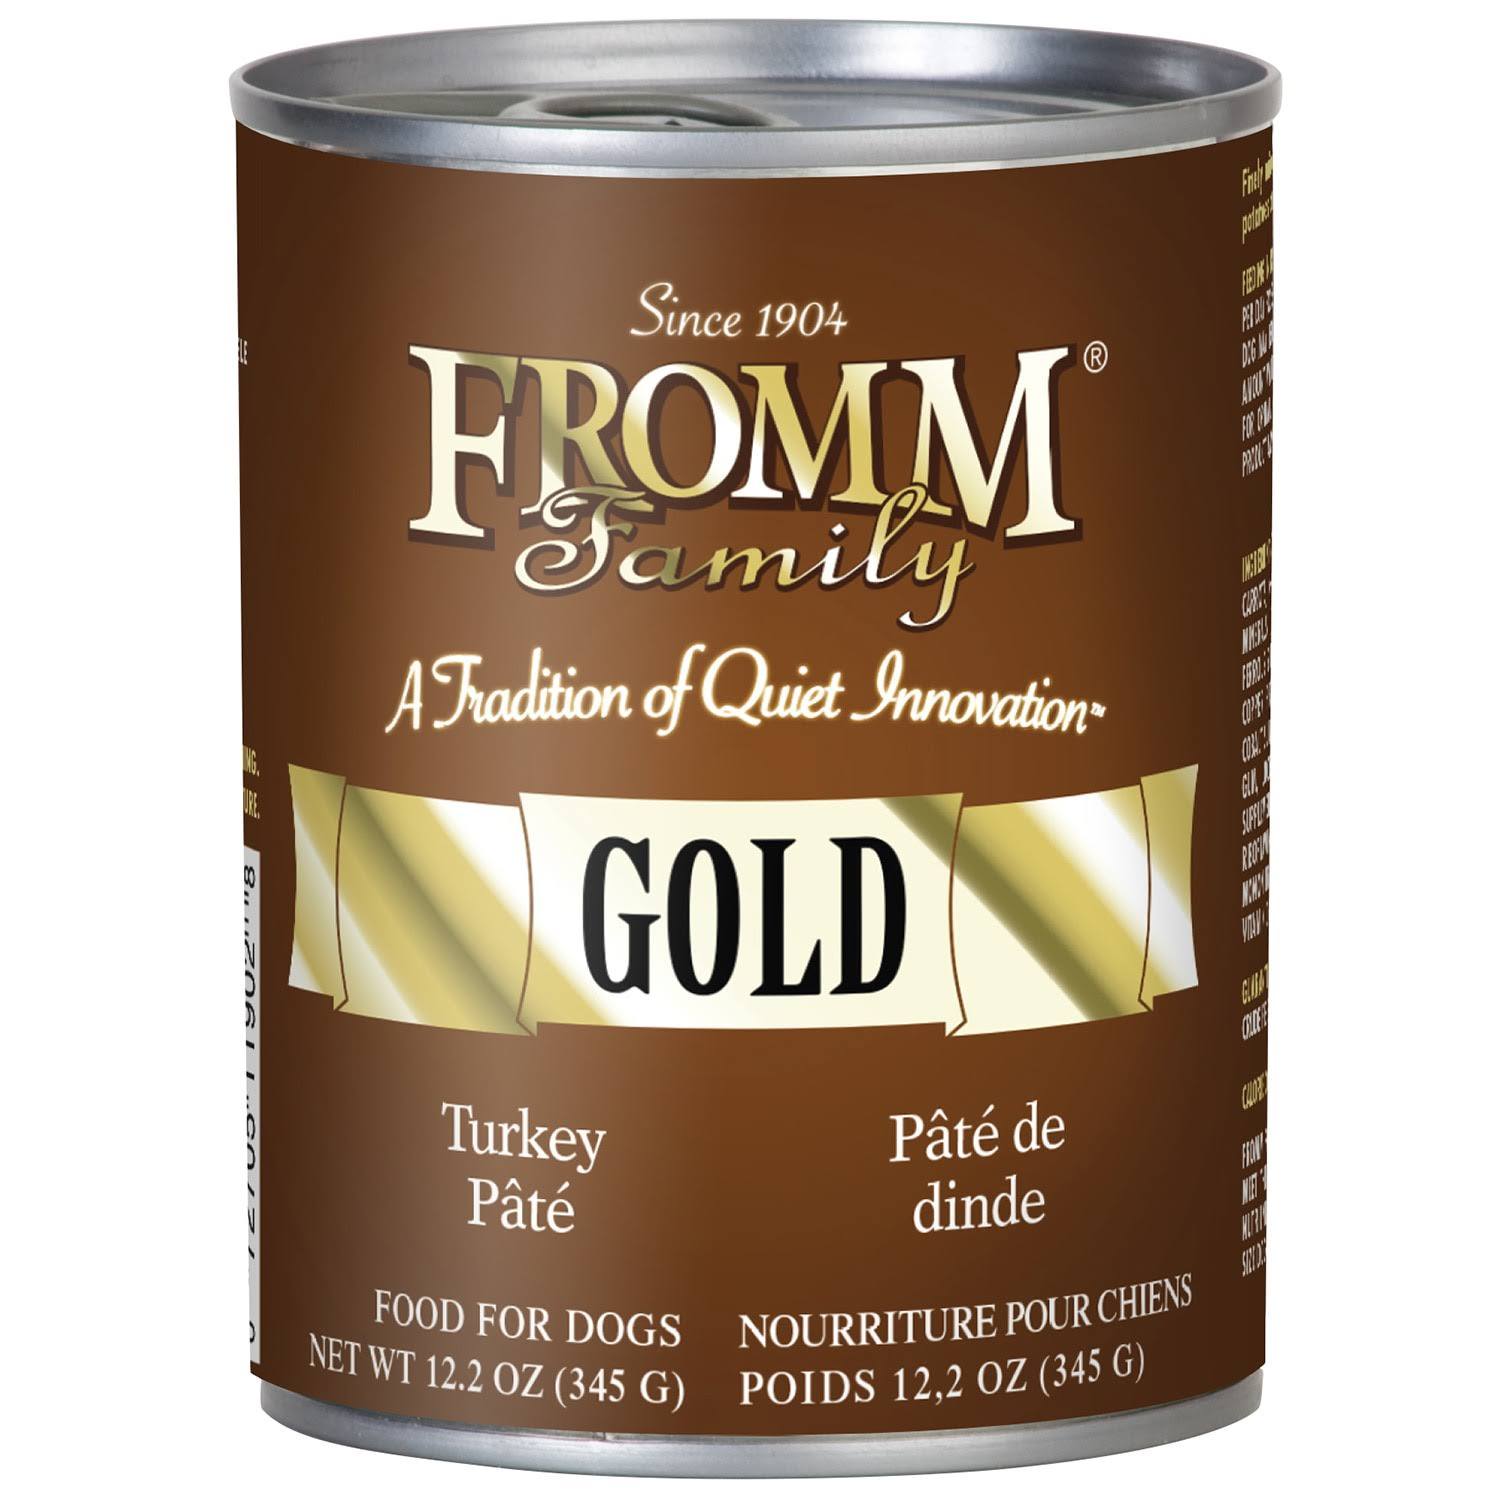 Fromm Gold Canned Dog Food - Turkey Pate